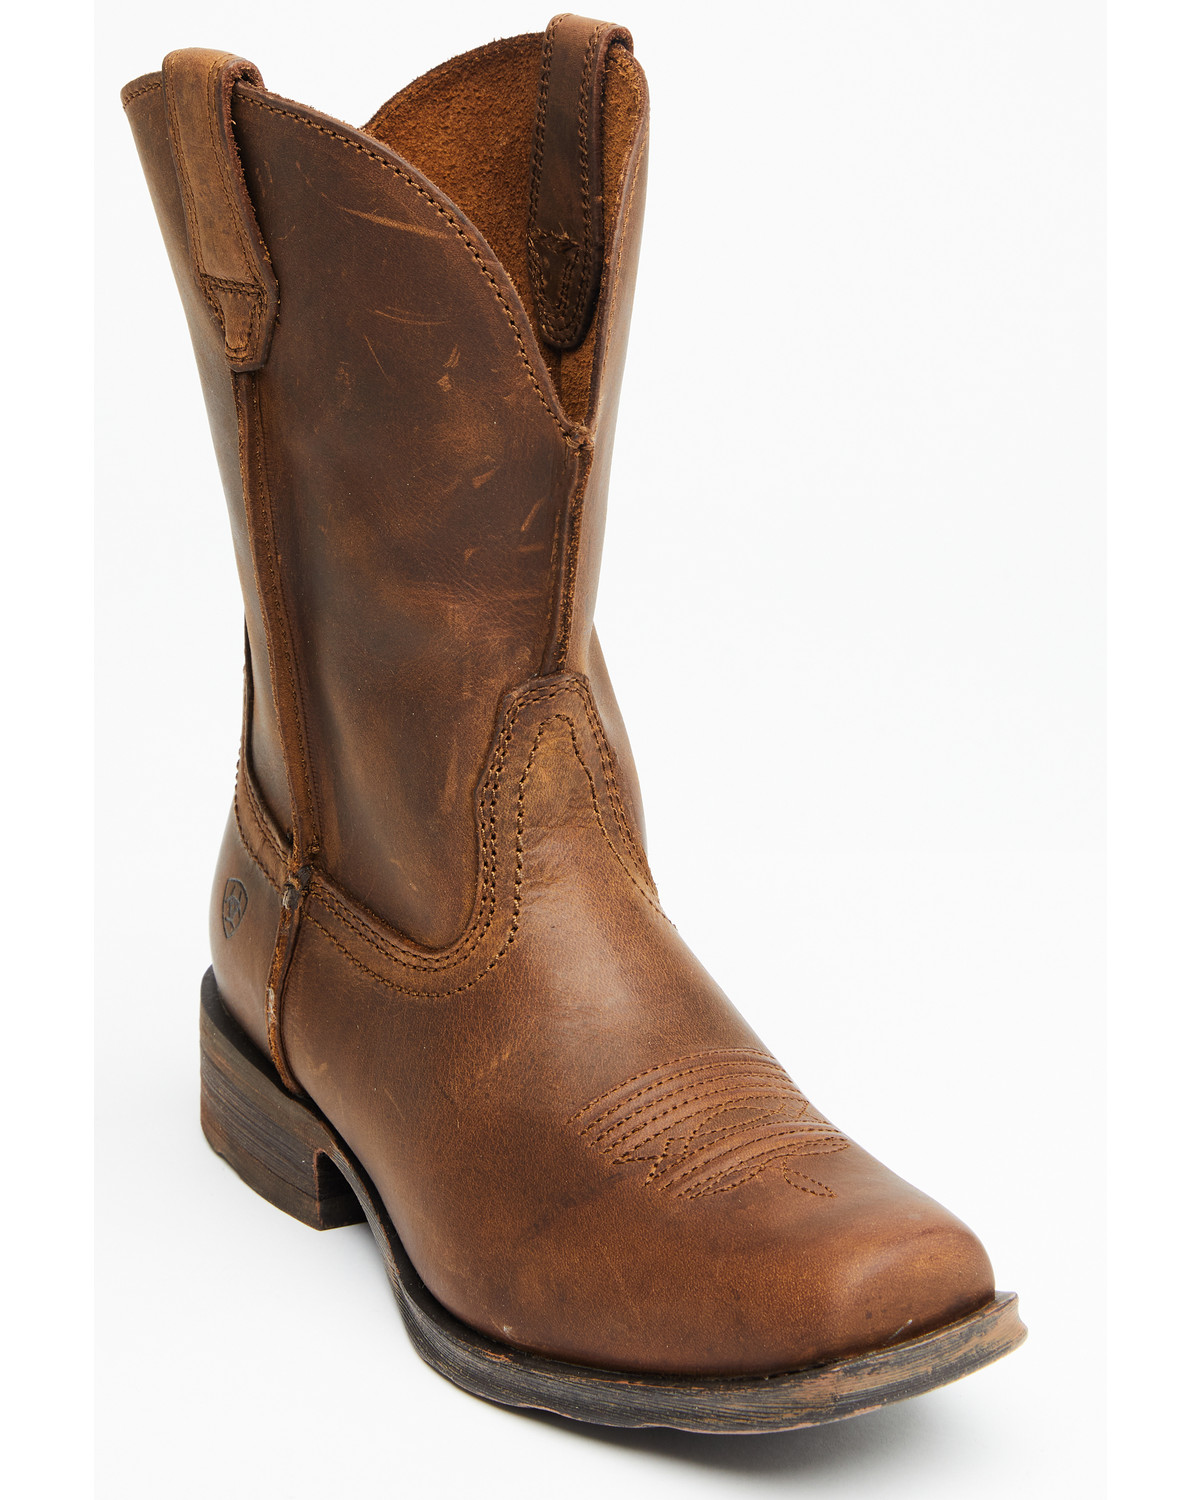 Ariat Rambler Cowgirl Boots - Square Toe - Country Outfitter